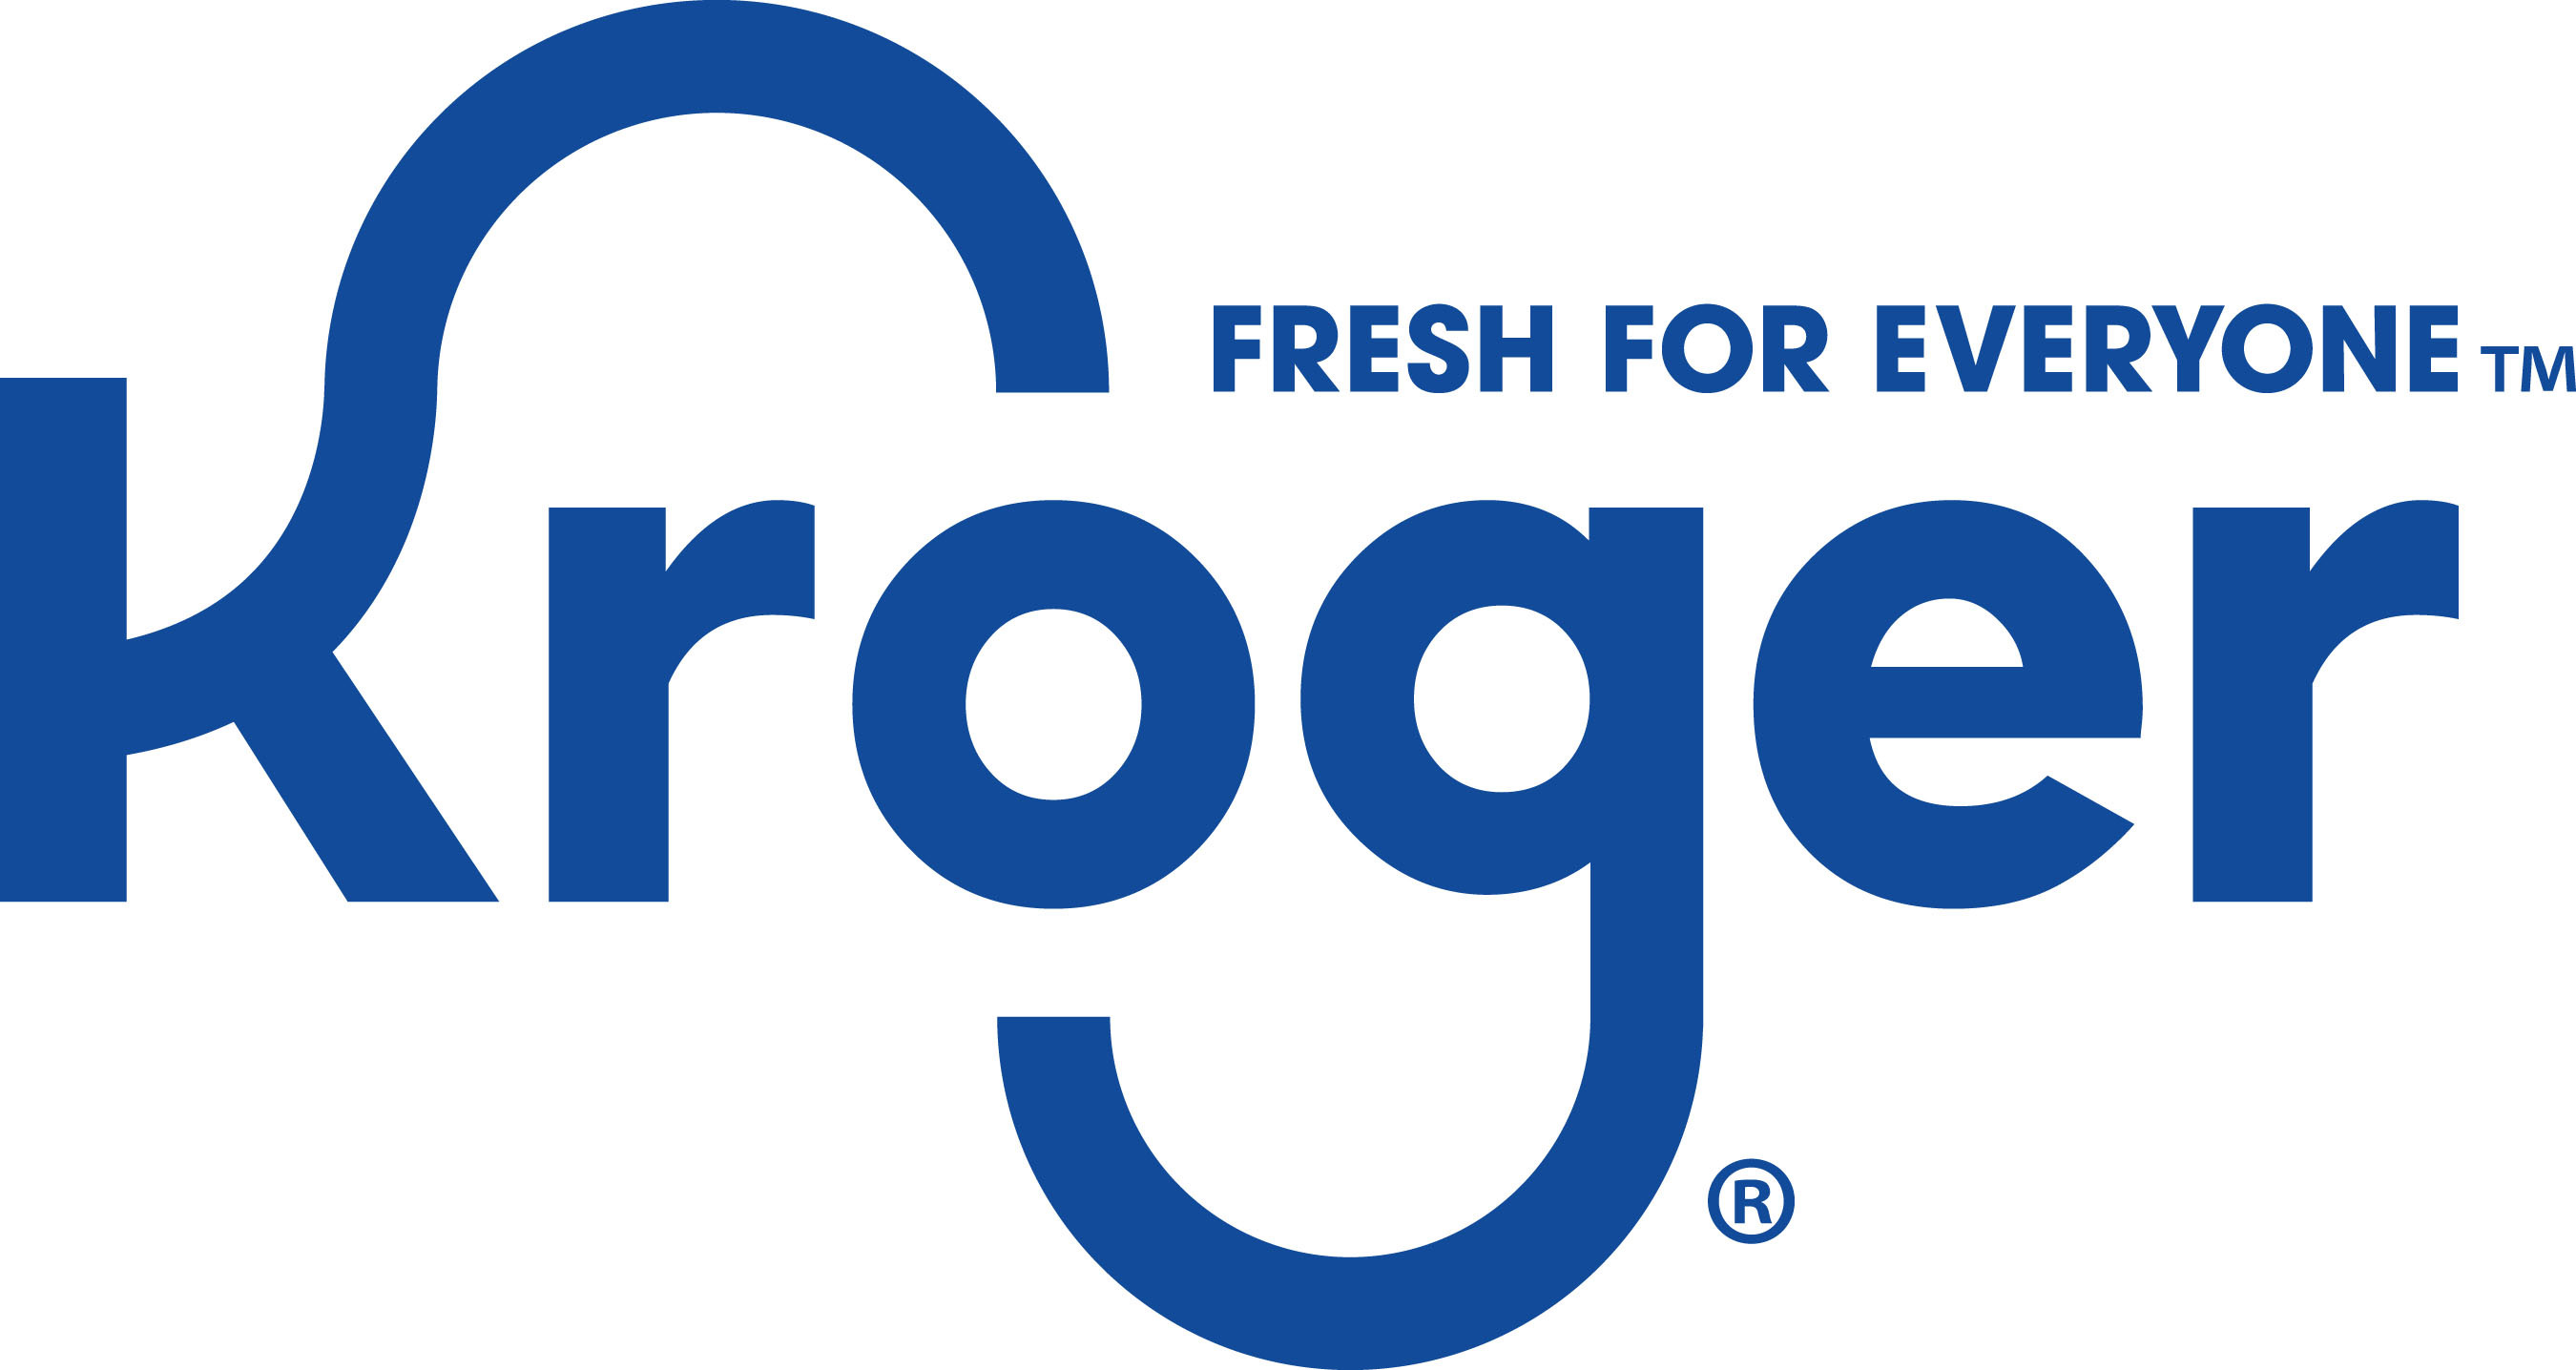 KROGER ACCEPTING SNAP AT PICKUP, BJS OFFERING FREE MEMBERSHIPS, MICHAELS CONTACTLESS SAME DAY DELIVERY, BED BATH & BEYOND USING DARK STORES FOR FULFILLMENT